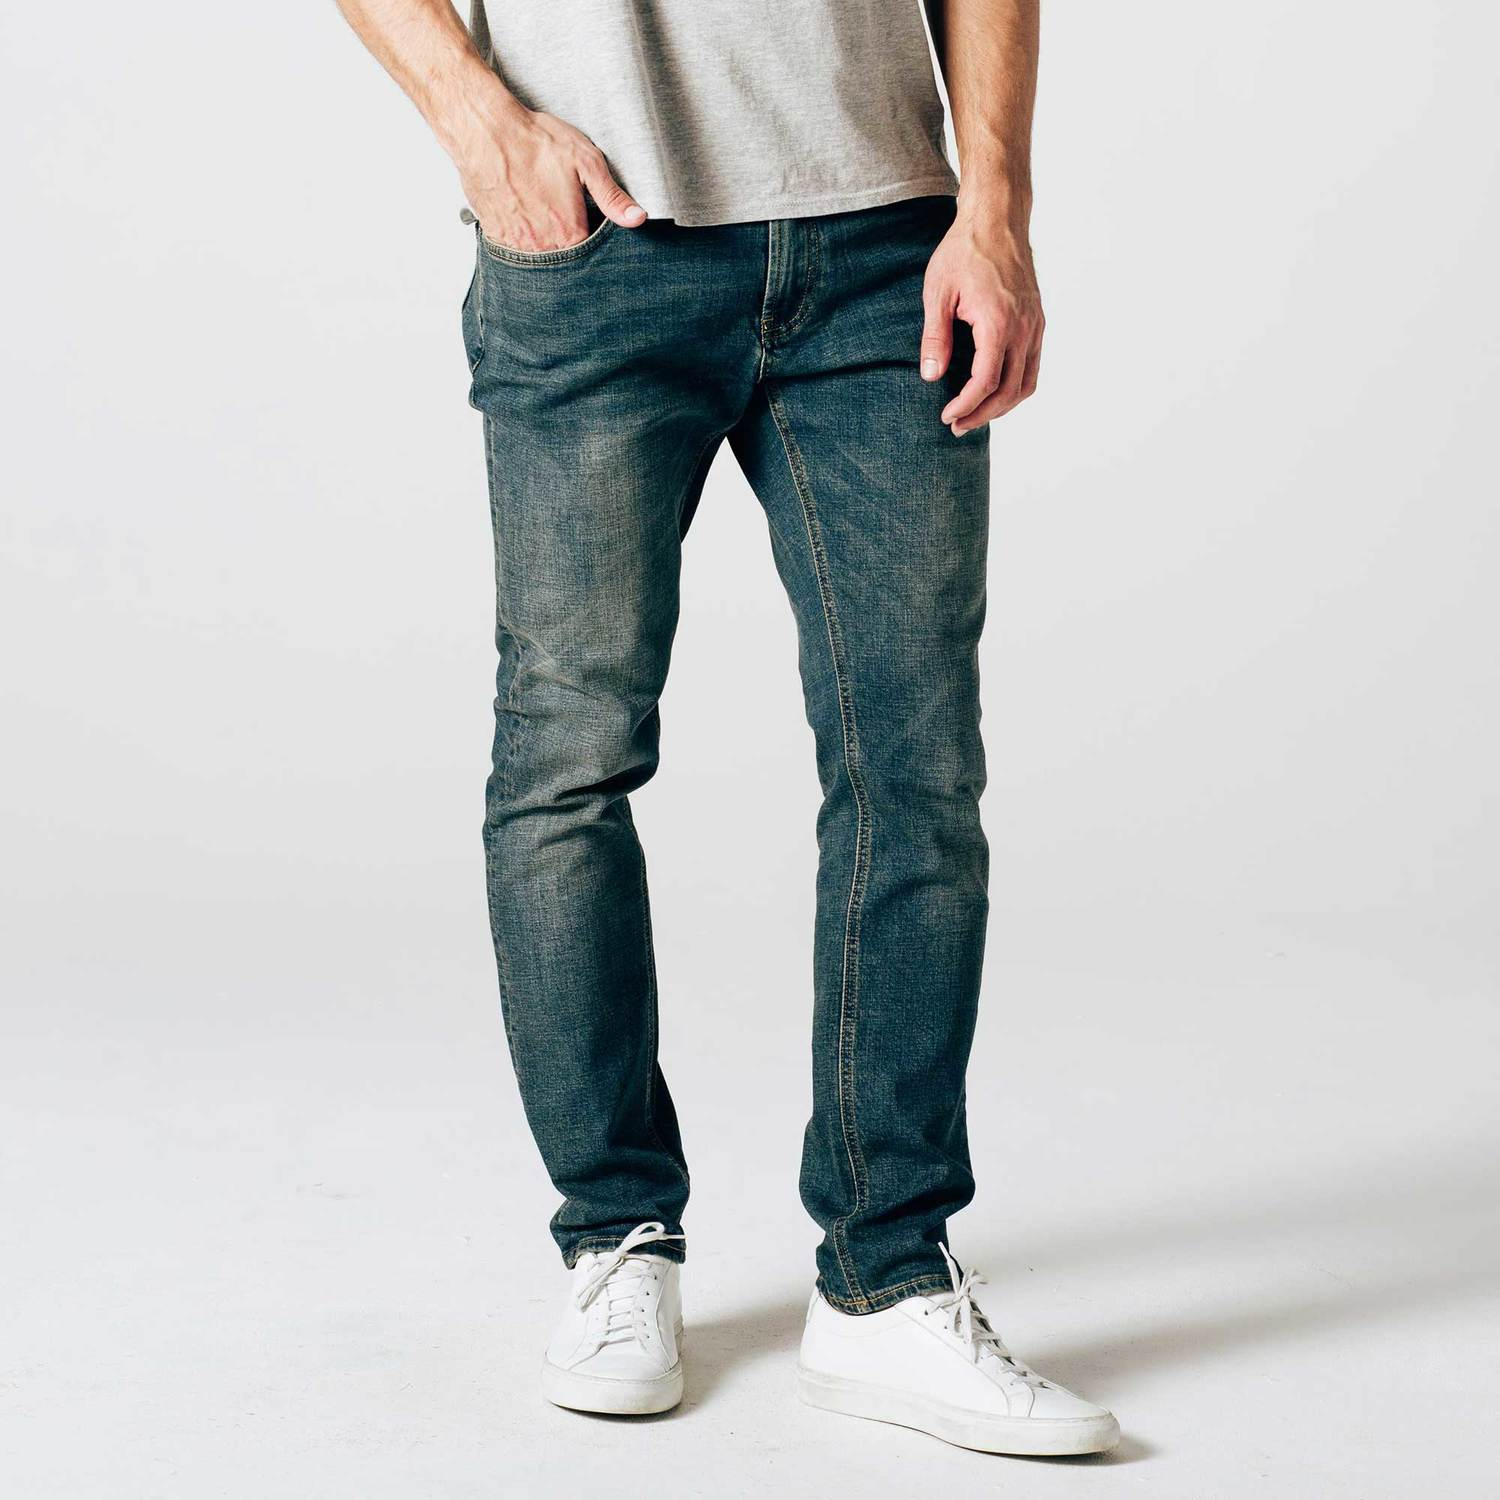 Mens Skinny-Slim Jeans in Dark Worn